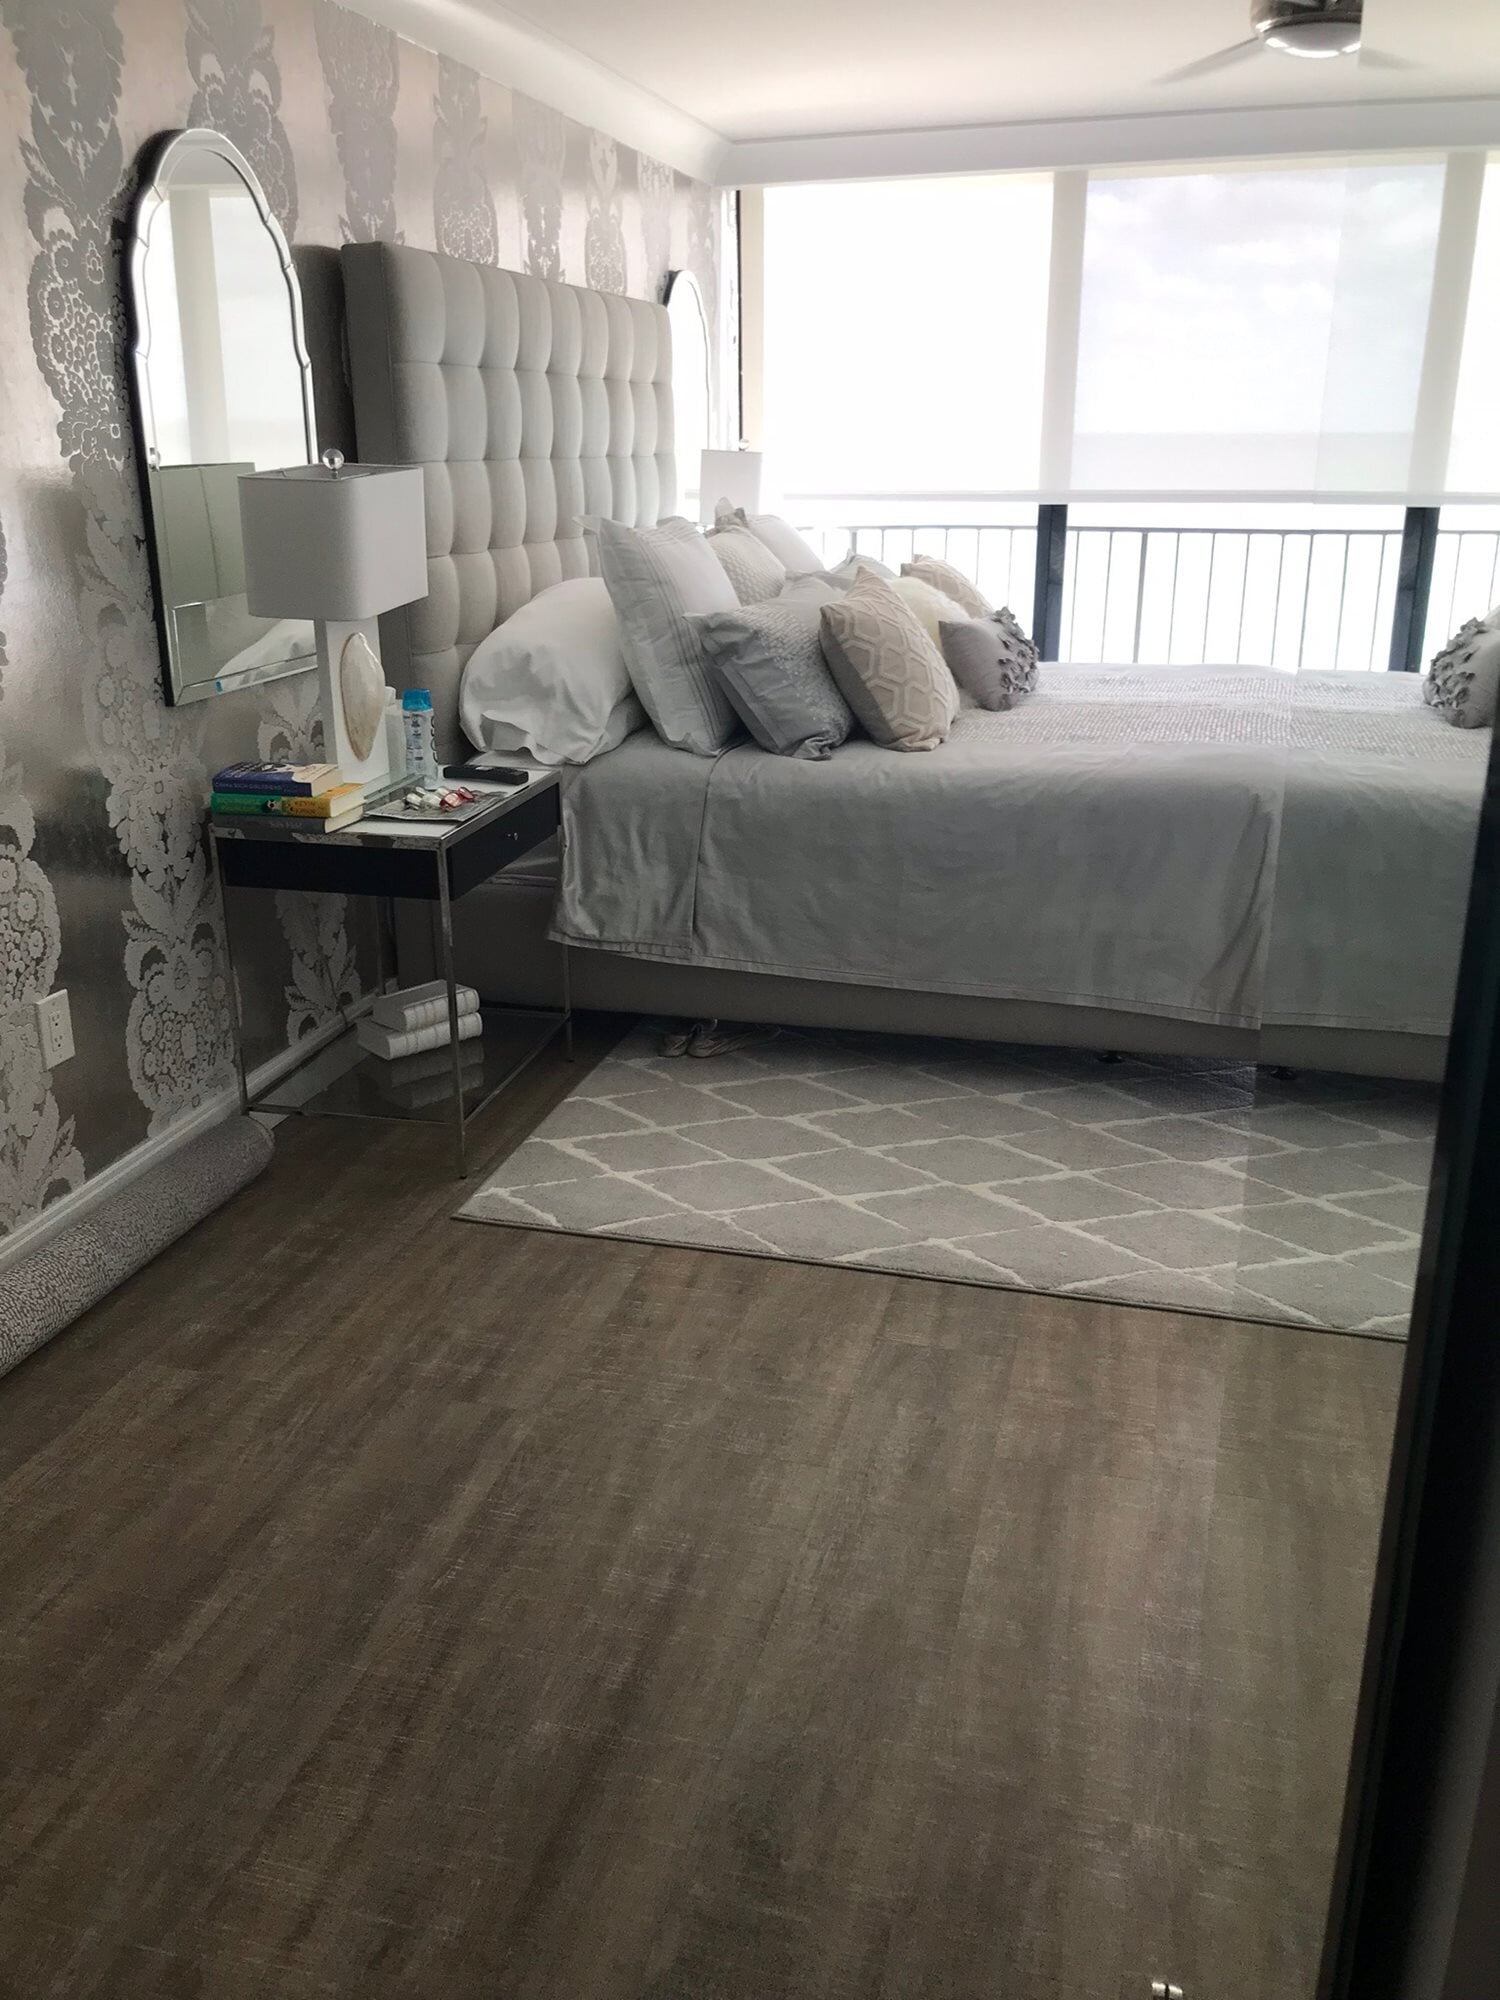 Contemporary bedroom flooring in West Palm Beach, FL from Floors For You Kitchen & Bath